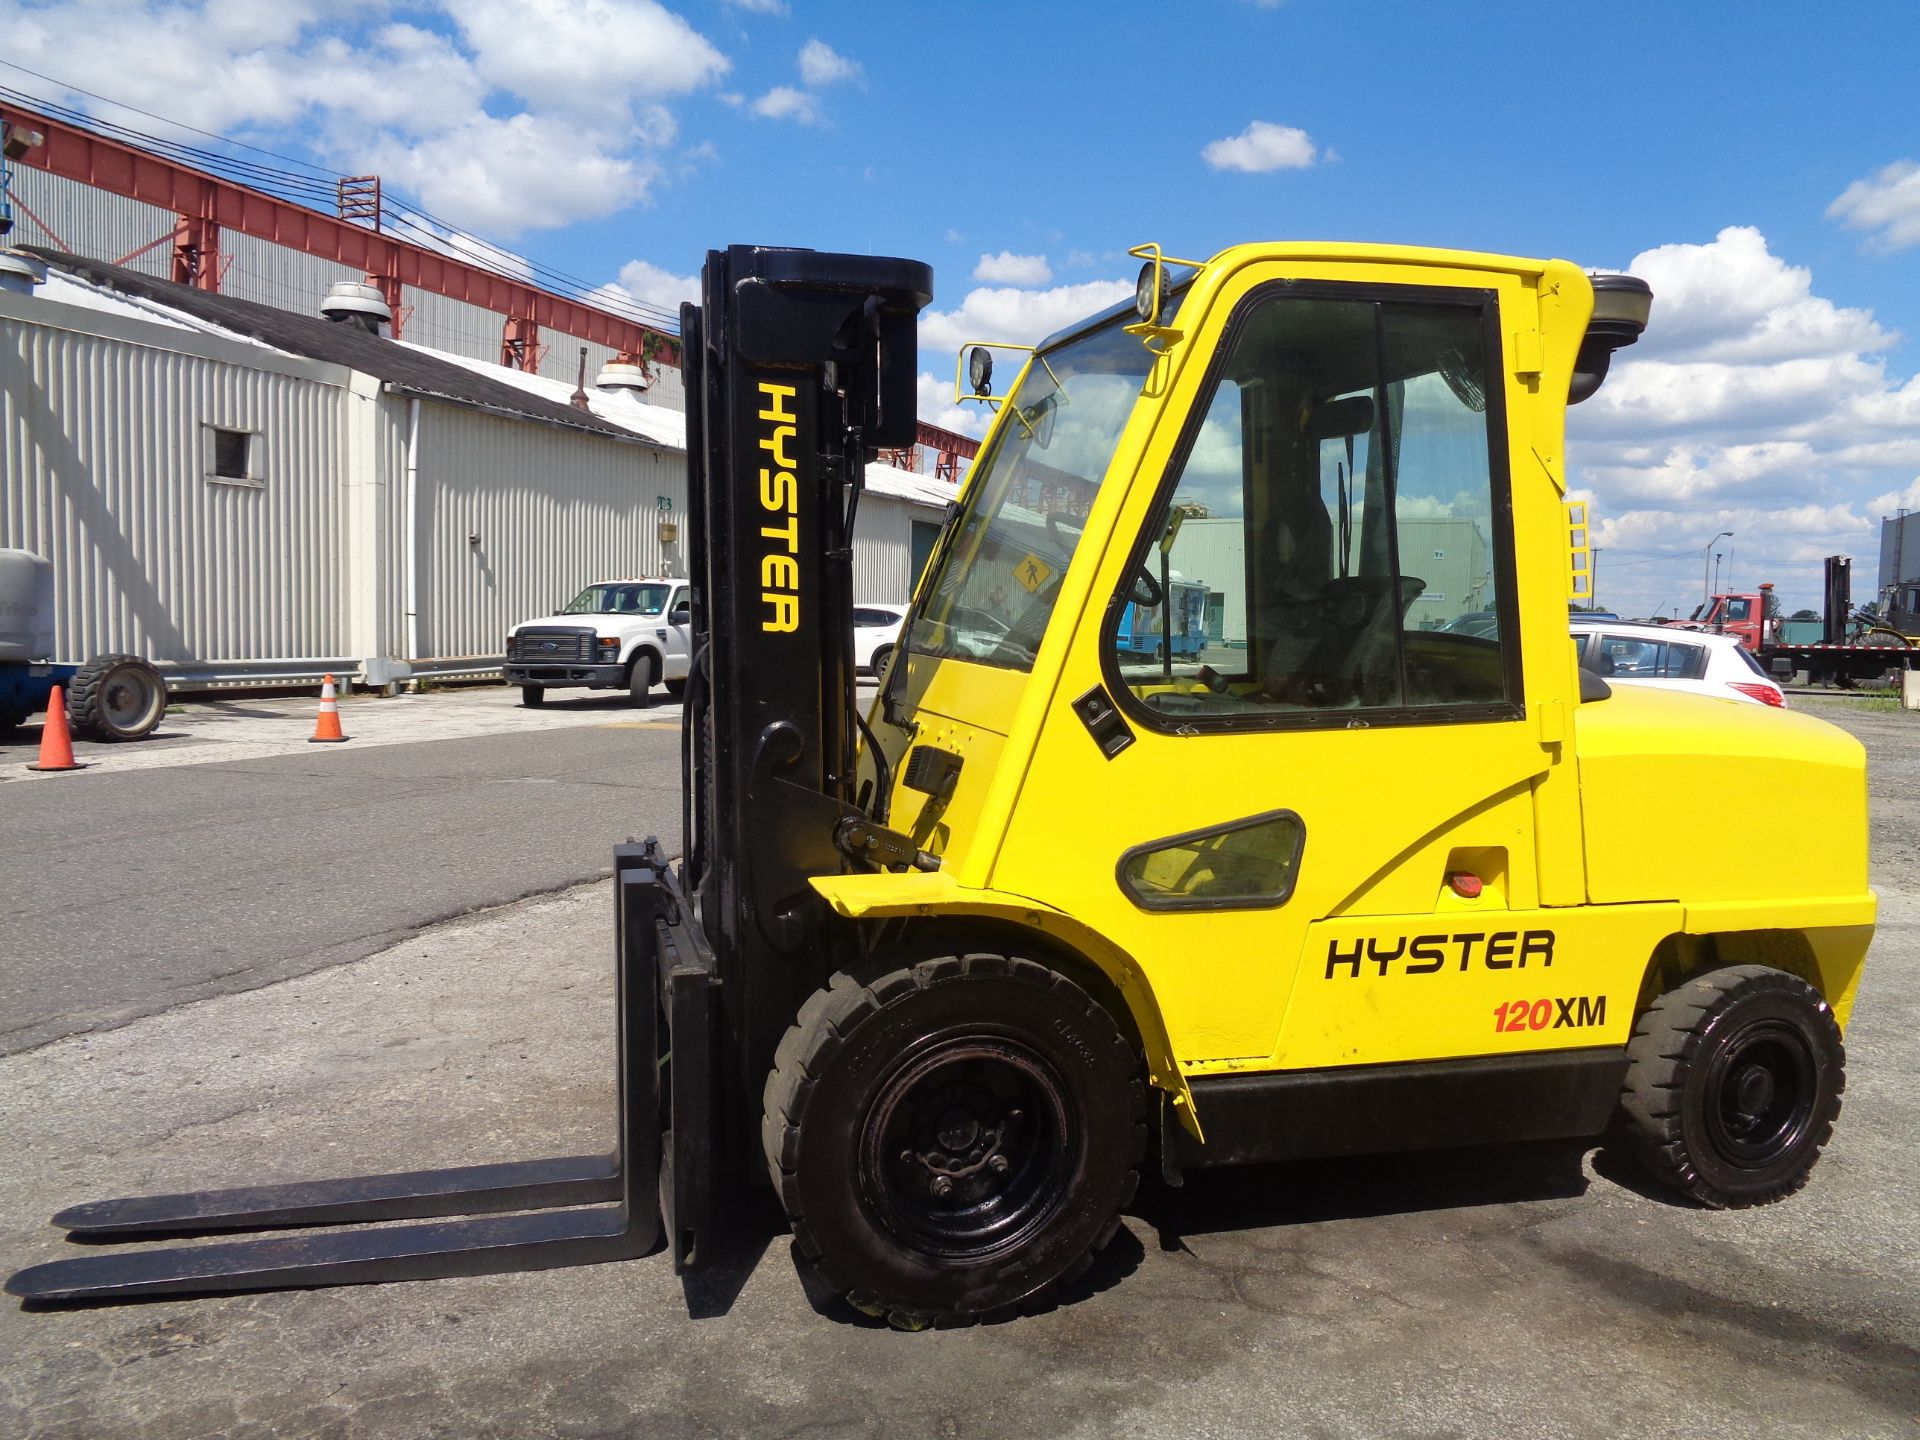 Hyster H120XL 12,000lb Forklift - Image 8 of 15